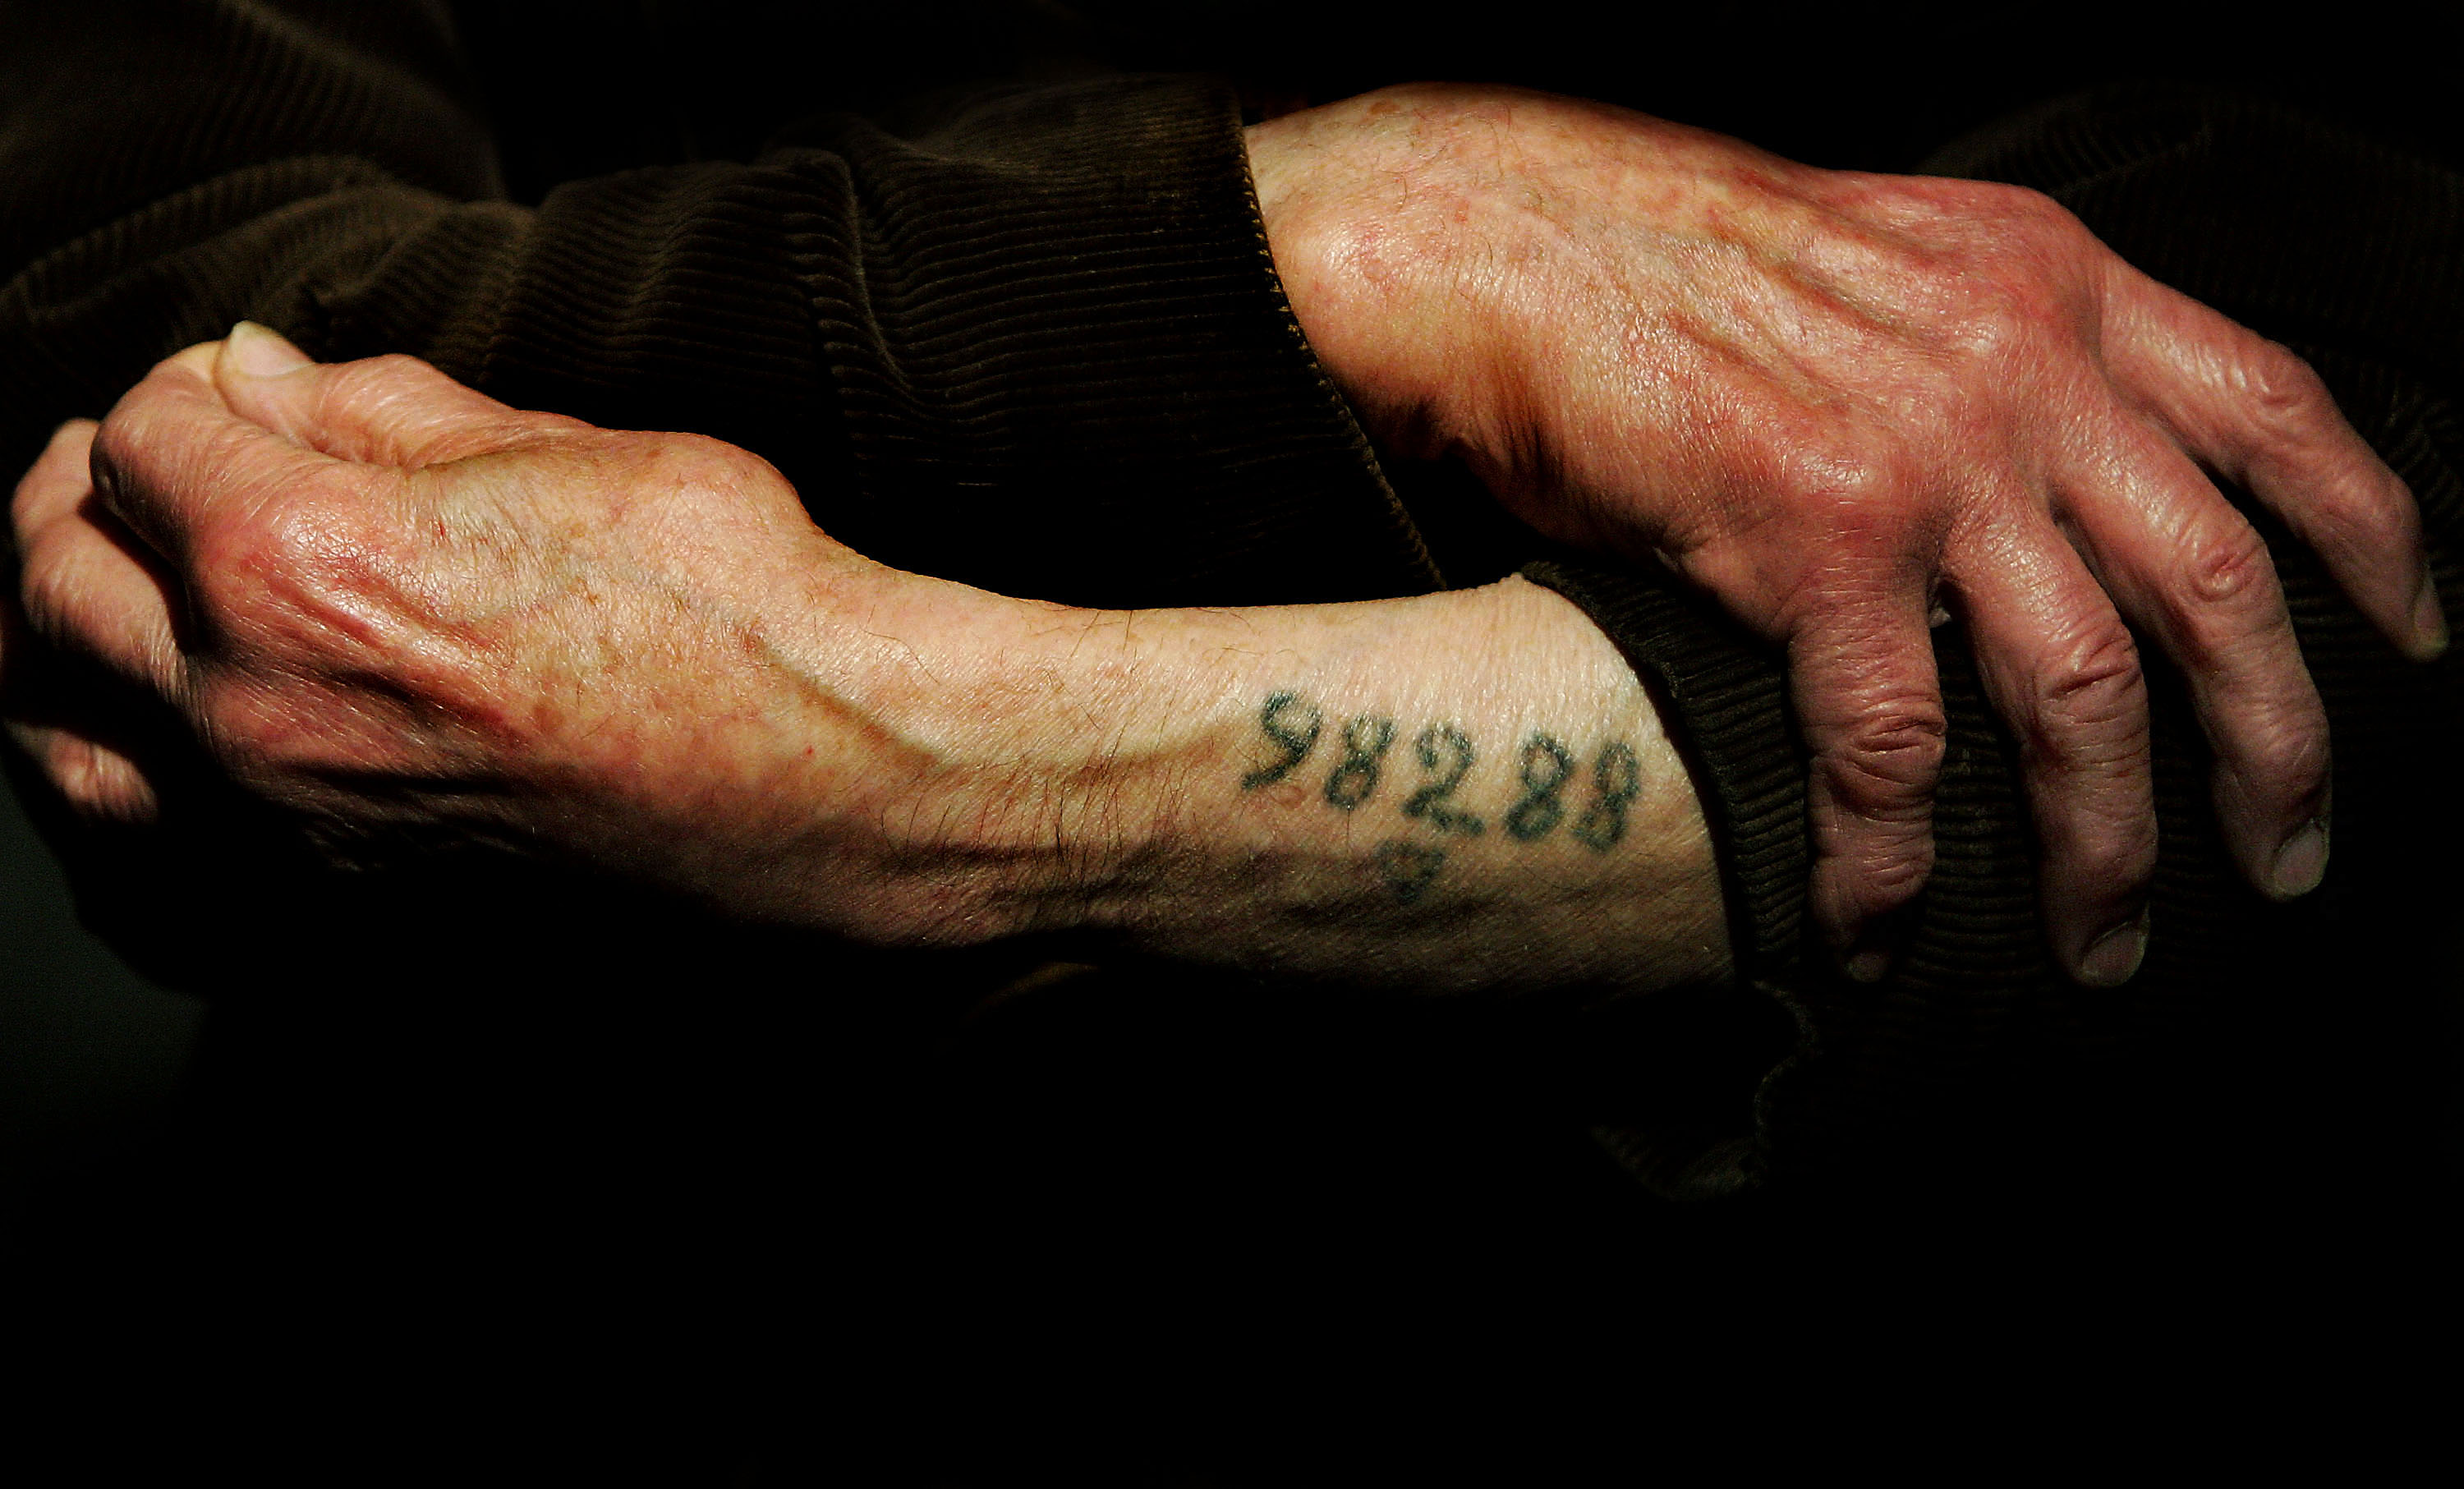 LONDON - DECEMBER 9: Auschwitz survivor Mr. Leon Greenman, prison number 98288, displays his number tattoo on December 9, 2004 at the Jewish Museum in London, England. Mr. Greenman O.B.E age 93 and a British citizen, spent three years of his life in six different concentration camps during World War II and since 1946 he has tirelessly recounted his life through his personal exhibition at the museum where he conducts educational events to all age groups. January 2005 will be the 60th anniversary of the liberation of the extermination and concentration camps, when survivors and victims who suffered as a result of the Holocaust will commemorated across the world. (Photo by Ian Waldie/Getty Images)